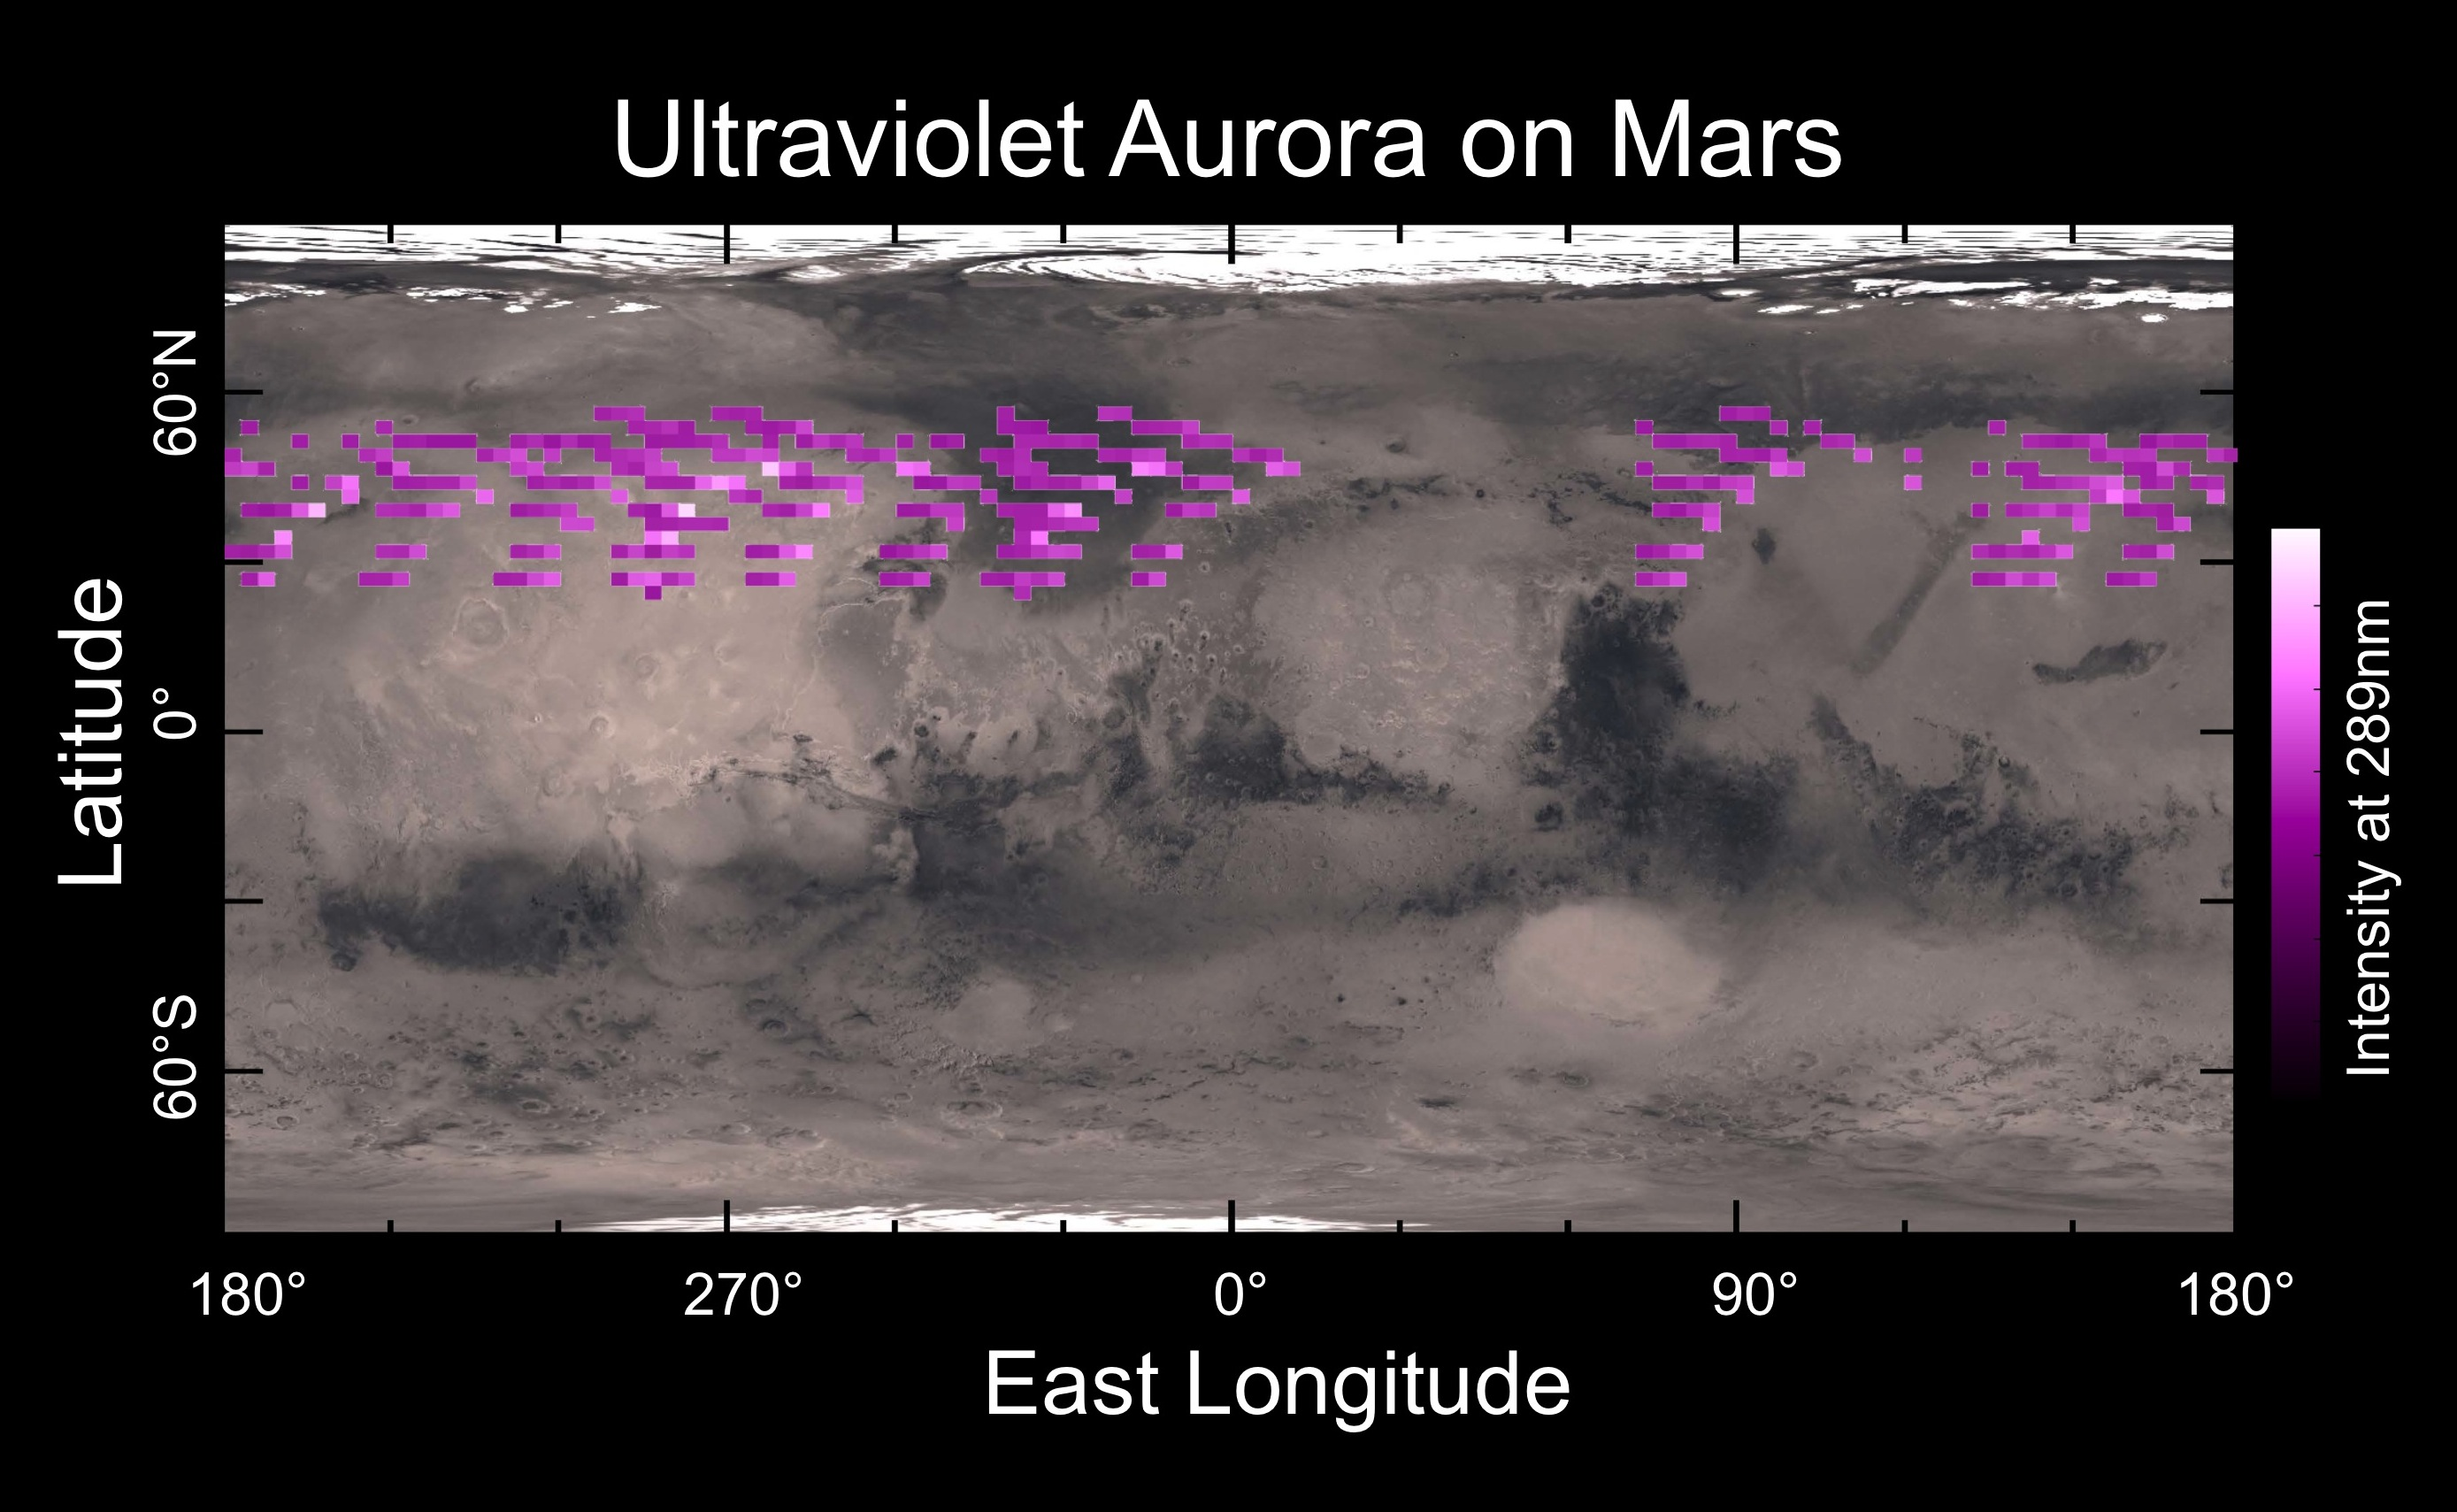 A map of MAVEN's Imaging Ultraviolet Spectrograph (IUVS) auroral detections in December 2014 overlaid on Mars' surface. The map shows that the aurora was widespread in the northern hemisphere, not tied to any geographic location. The aurora was detected in all observations during a 5-day period. Credits: University of Colorado